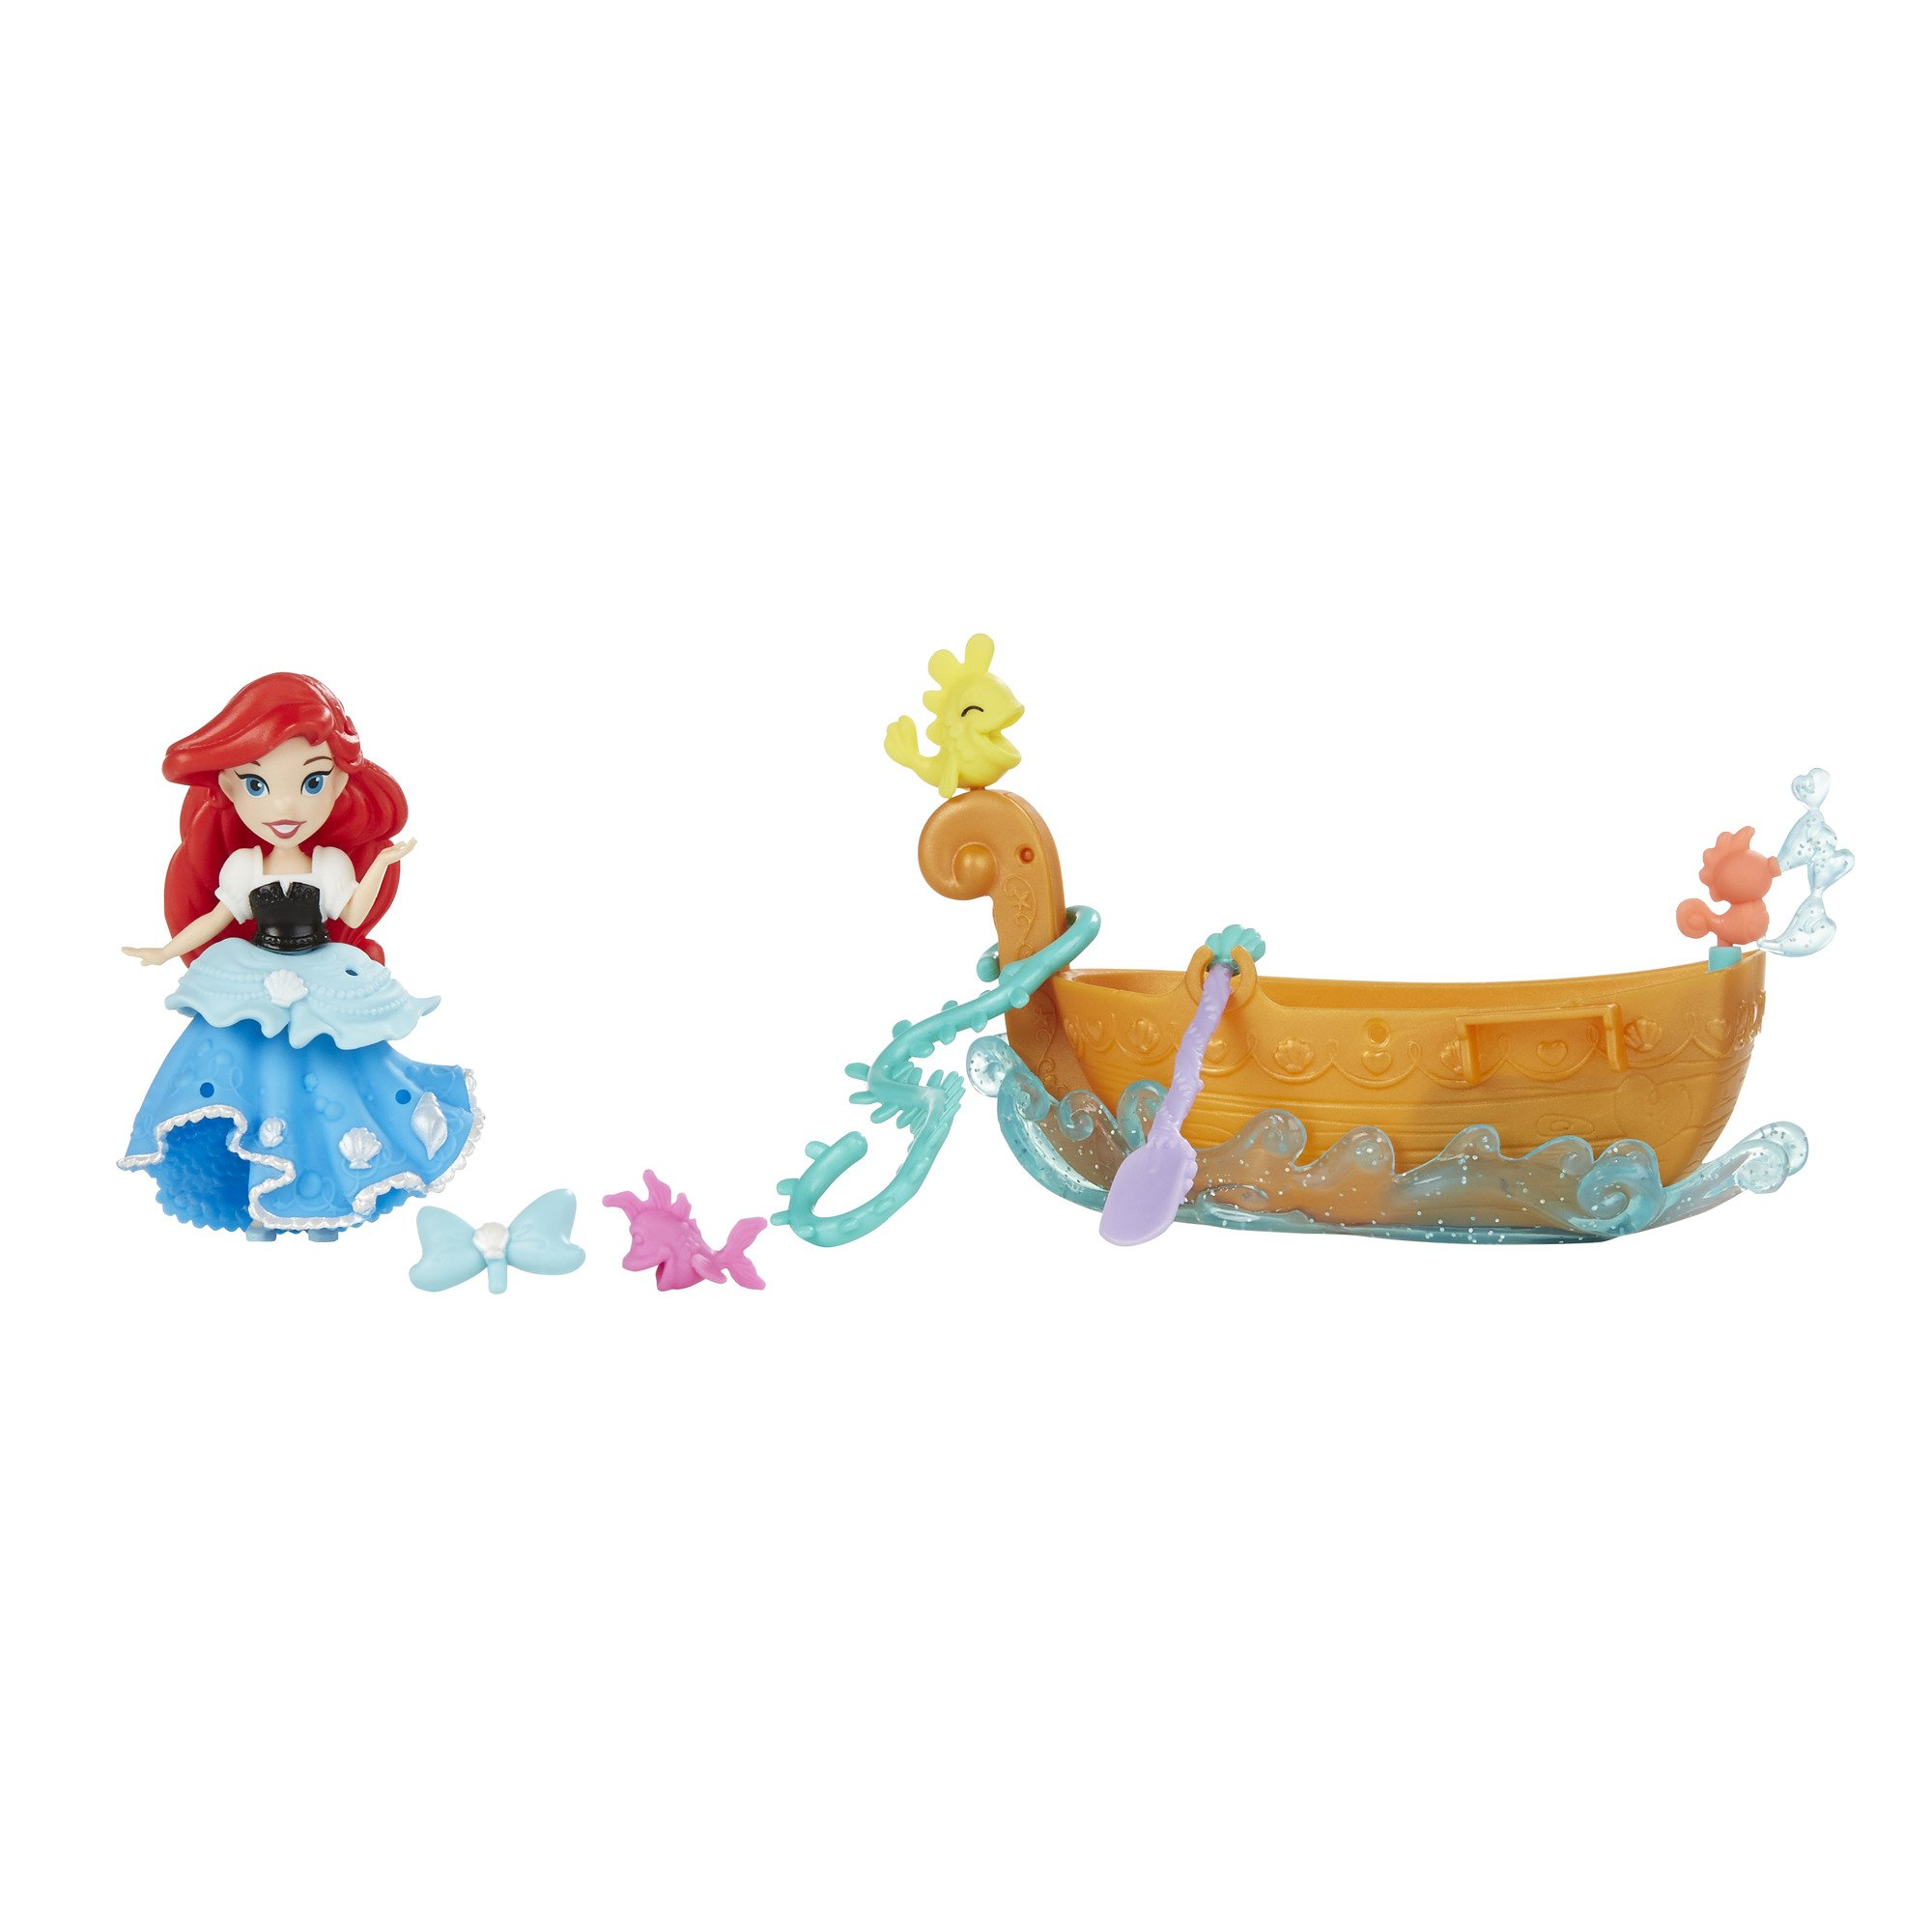 Disney Princess Little Kingdom Ariel's Floating Dreams Boat by Disney Princess